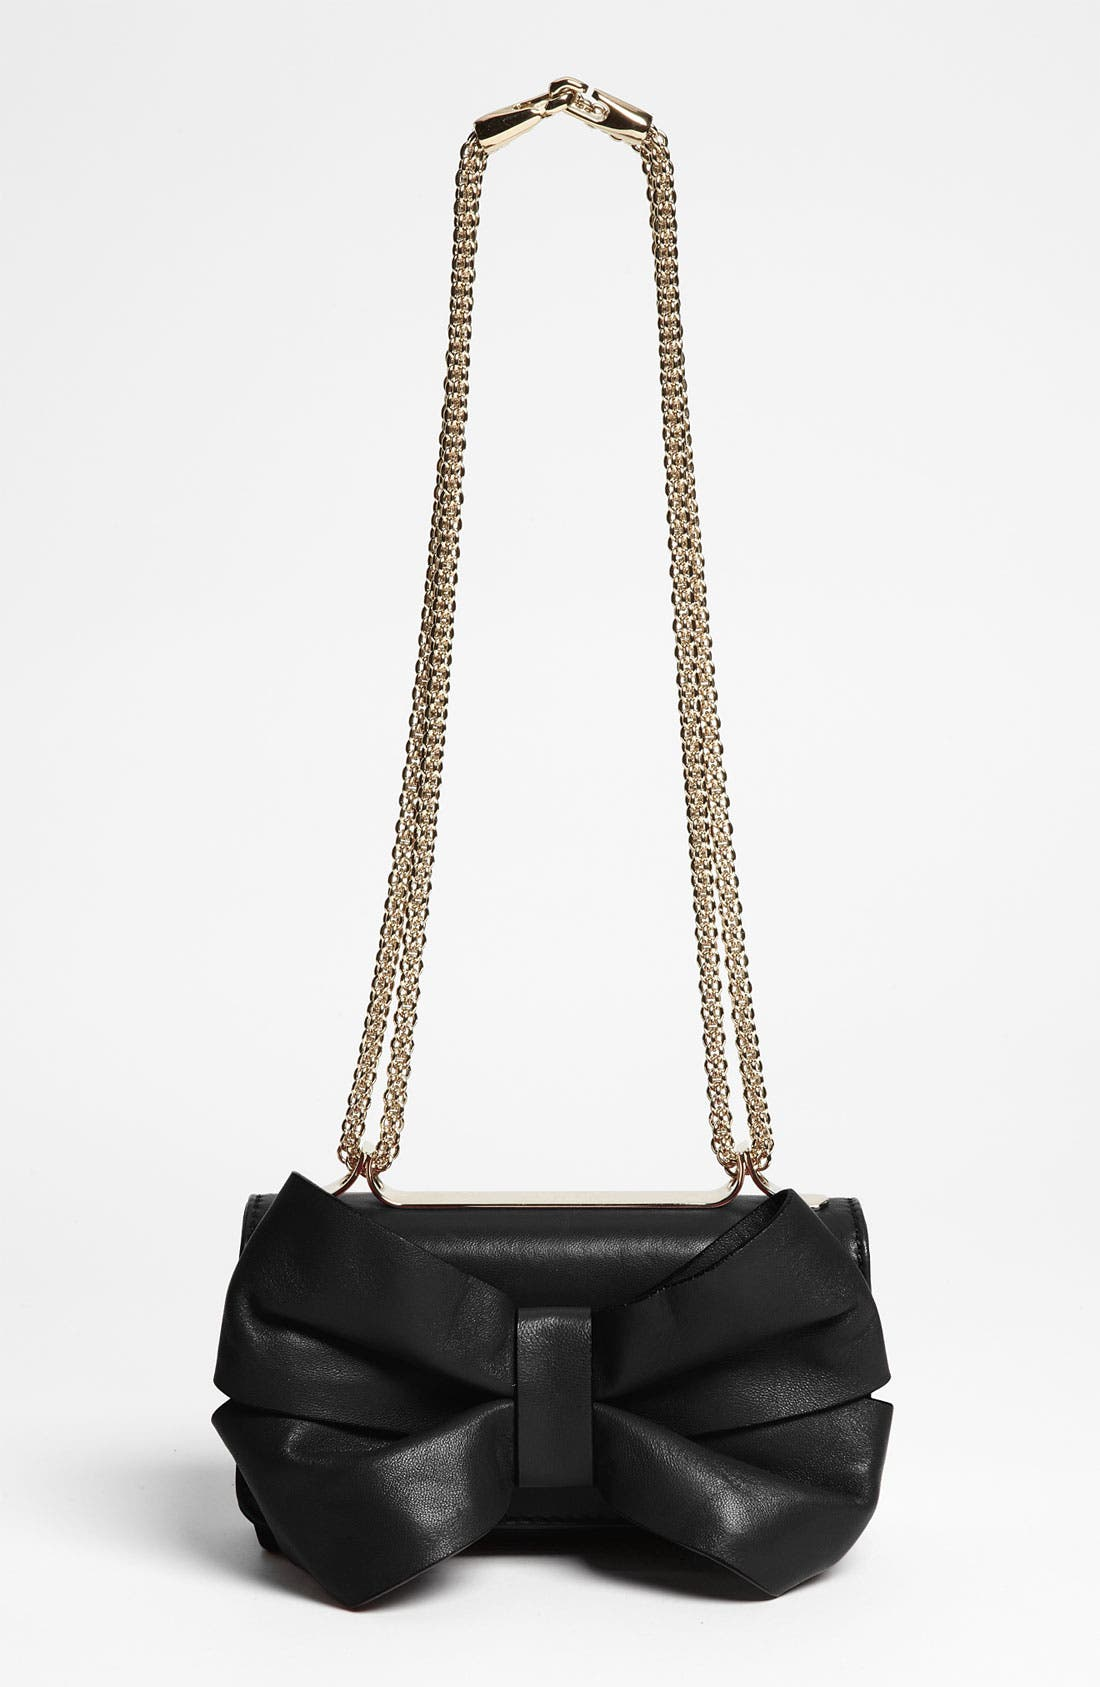 Alternate Image 1 Selected - Valentino 'Bow - Mini' Leather Shoulder Bag